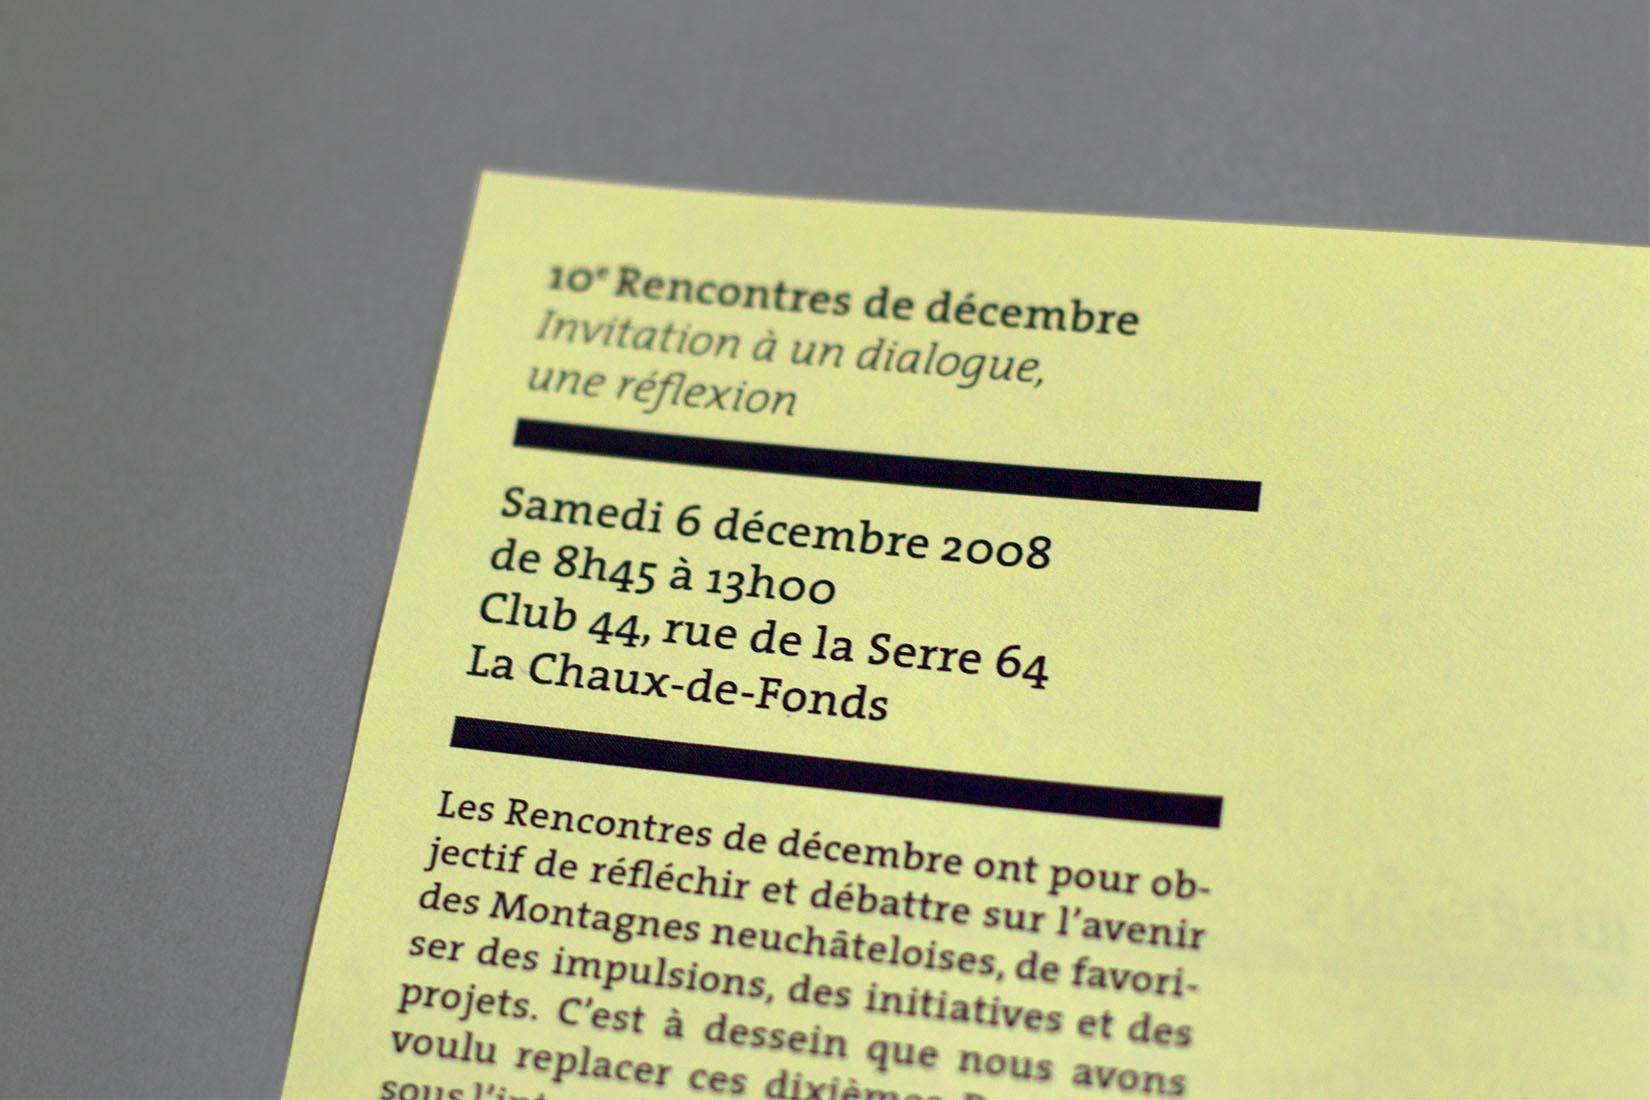 ID Régions, citizen forum, program, meeting, visual identity